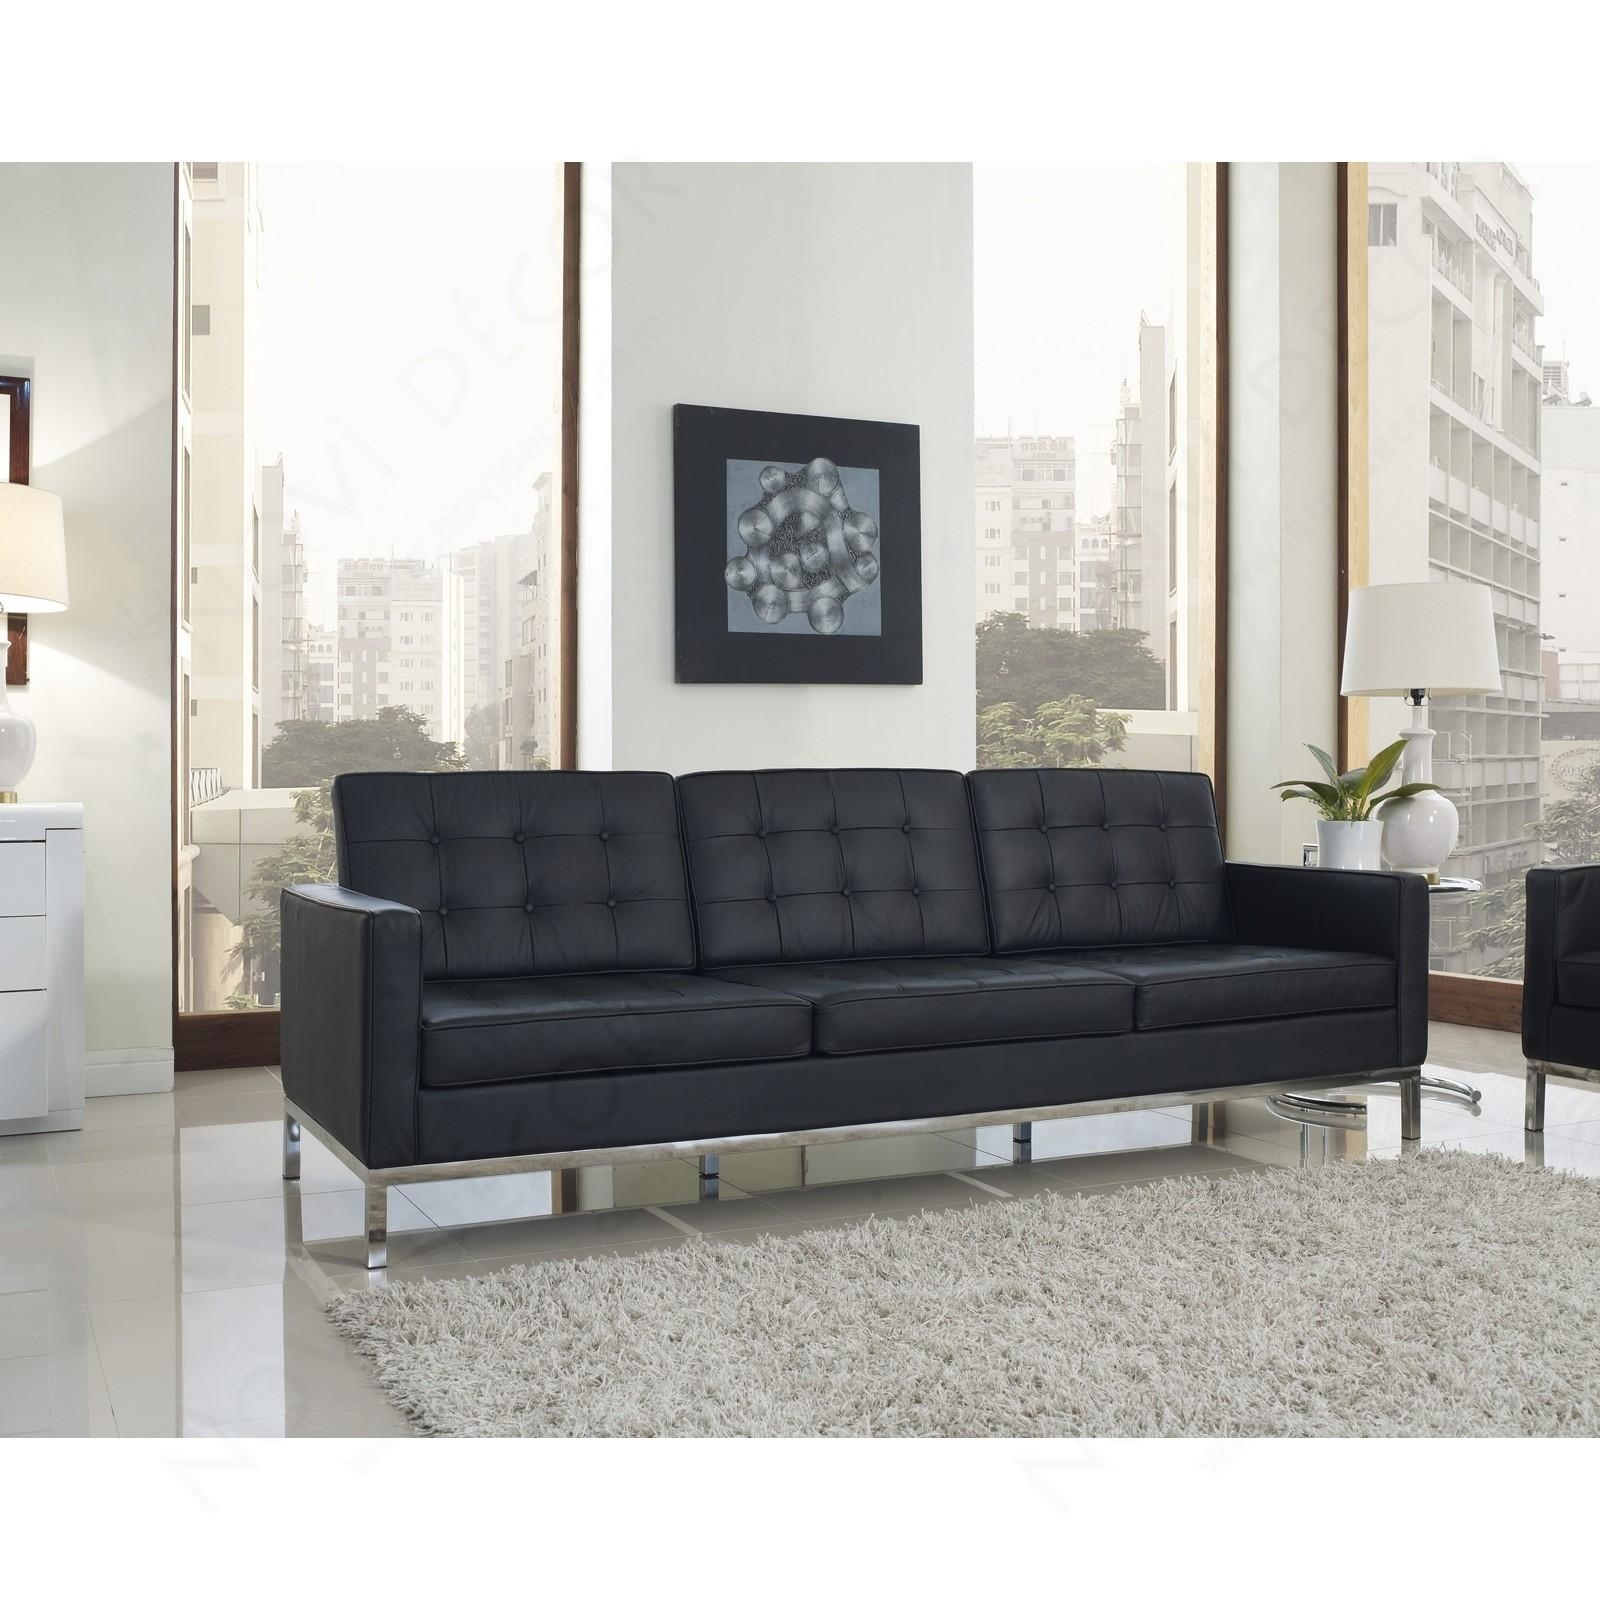 Sofas Center : Florence Knoll Sofa Leather And Chrome Plated Steel For Florence Knoll Sofas (View 16 of 20)